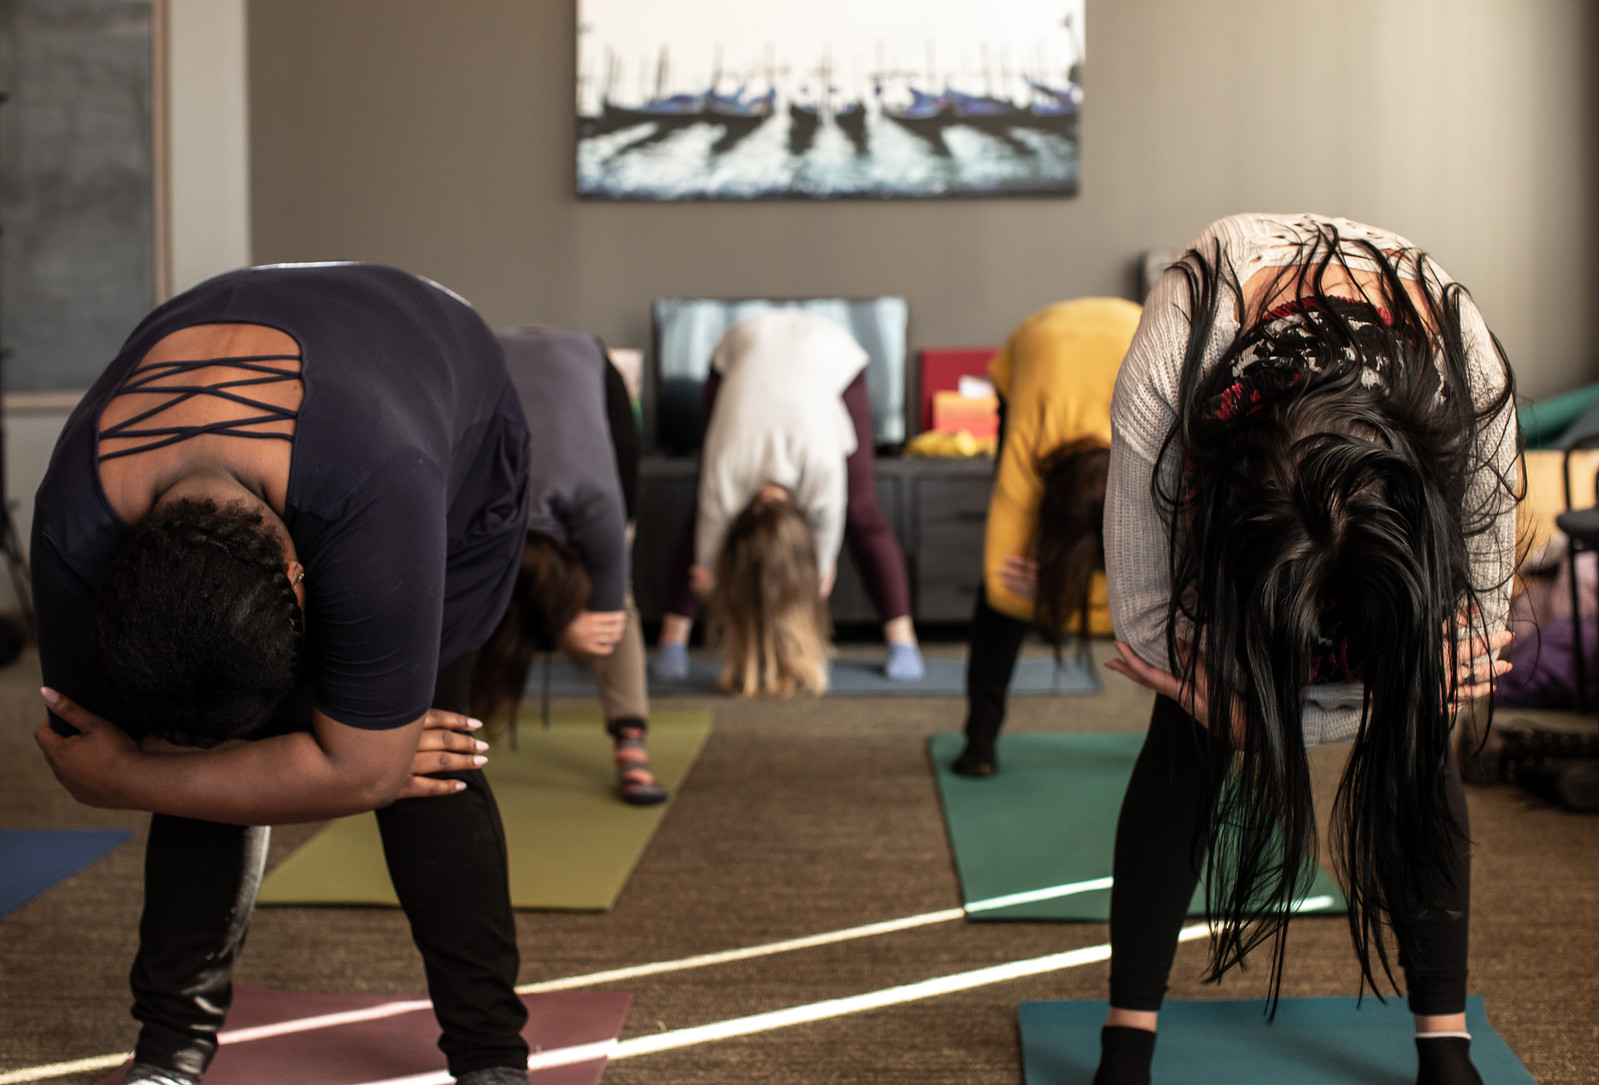 MOVEMENT/YOGA/DANCE THERAPY   Through modality, patients can experience the body as a source of information and satisfaction rather than the focus of unremitting conflict. Through kinesthetic sensing, patients can learn to attend to, identify, and even experience feelings and bodily sensations previously avoided. This group promotes relaxation and a more positive body image and greater awareness of how physical appearance is not the most important factor related to body image.